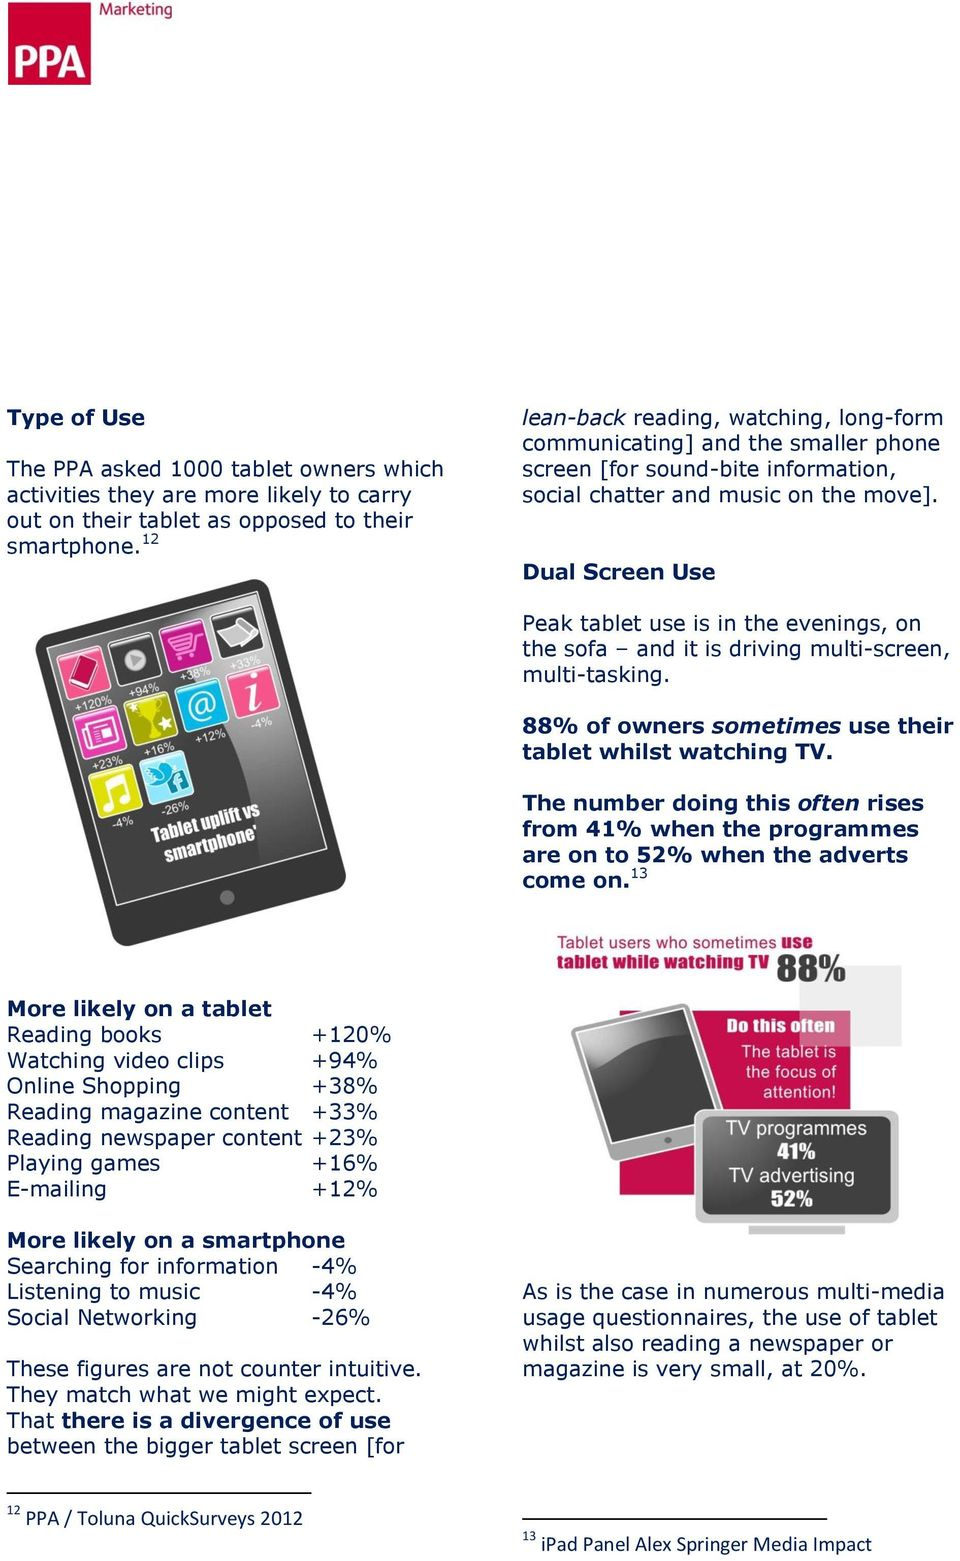 Dual Screen Use Peak tablet use is in the evenings, on the sofa and it is driving multi-screen, multi-tasking. 88% of owners sometimes use their tablet whilst watching TV.